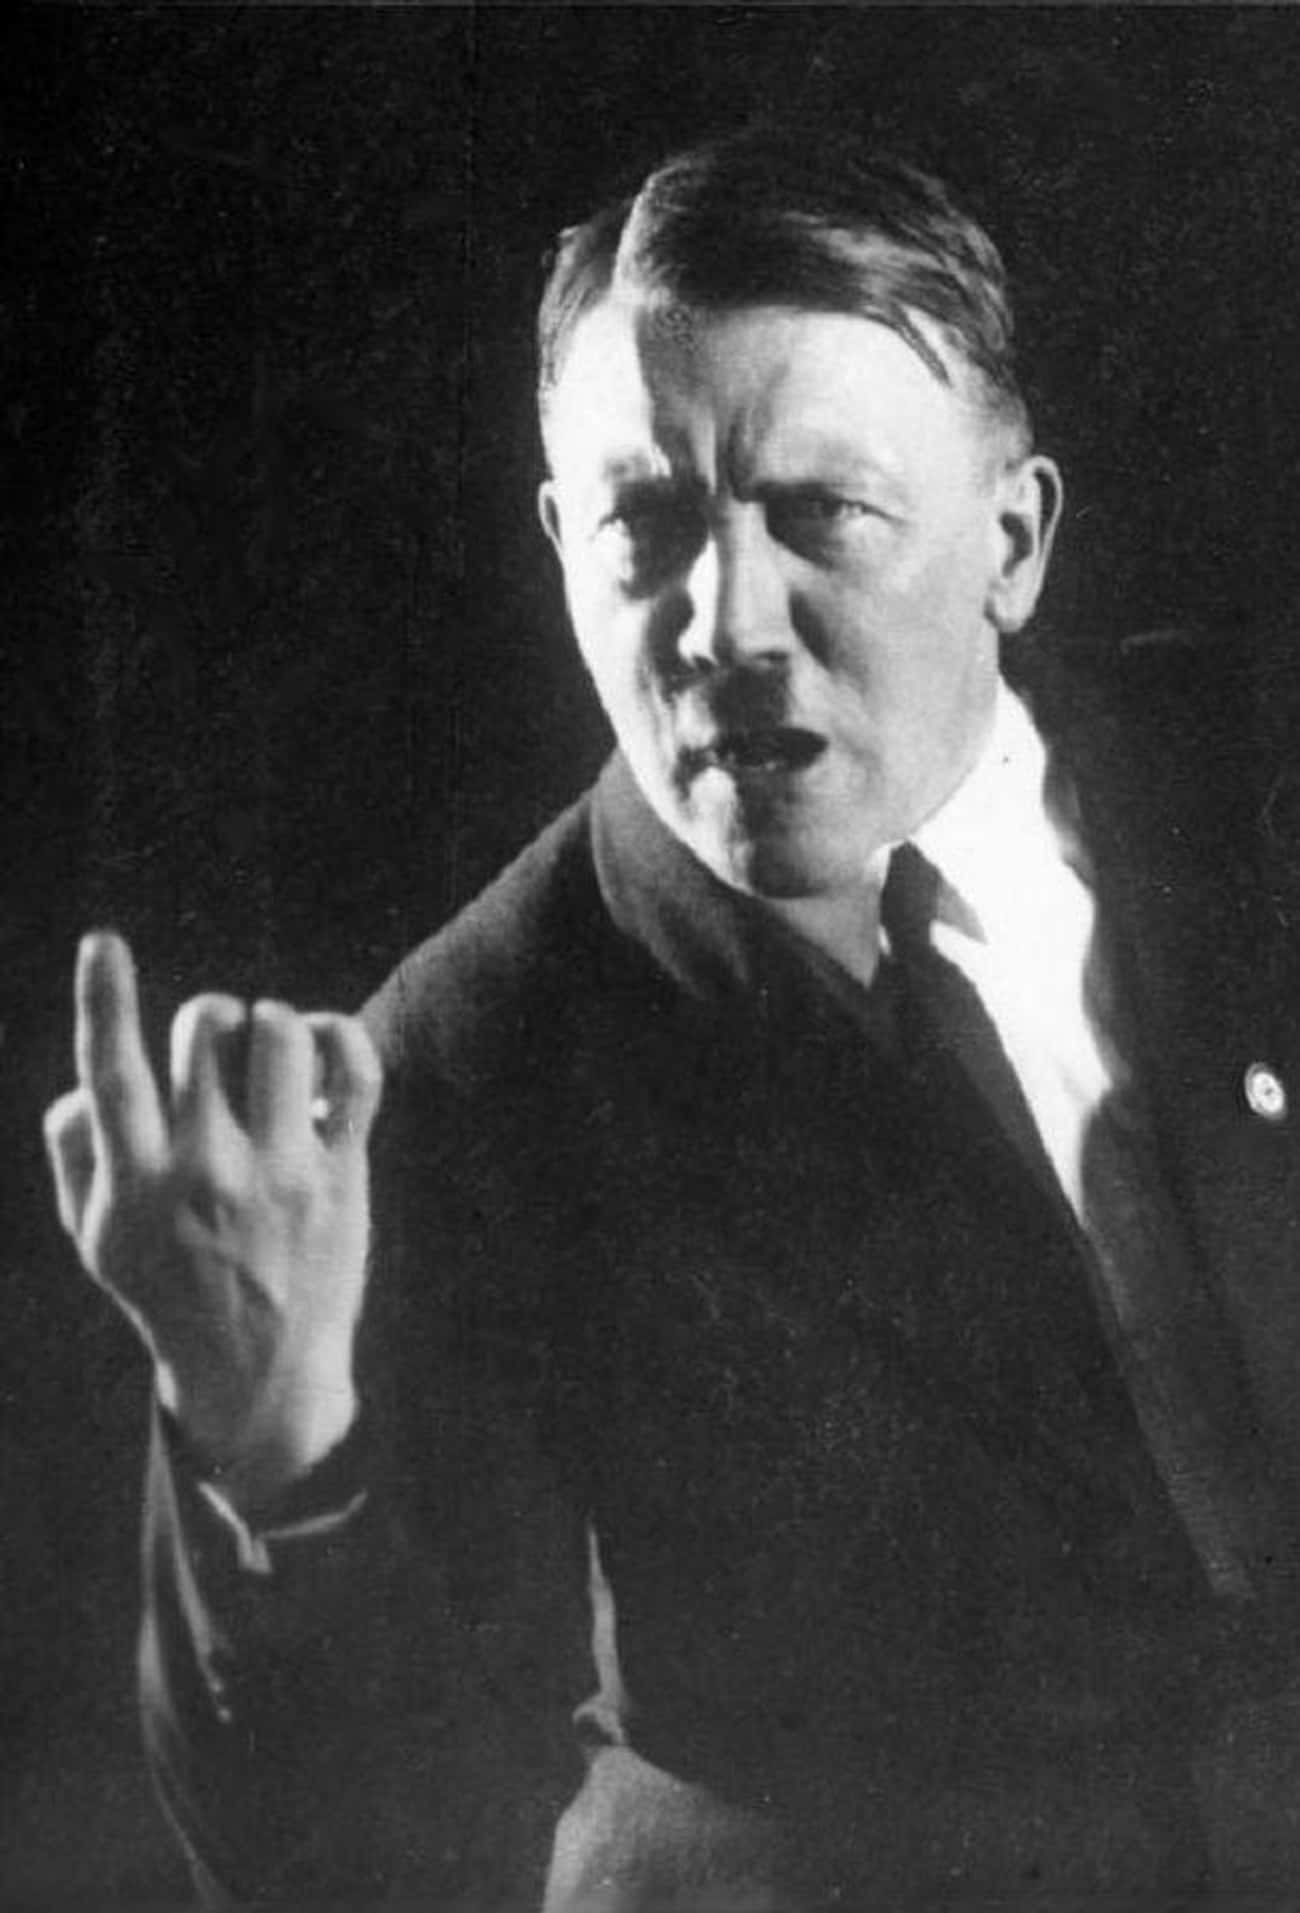 He Spoke Positively About Hitler And Compared Himself To Him